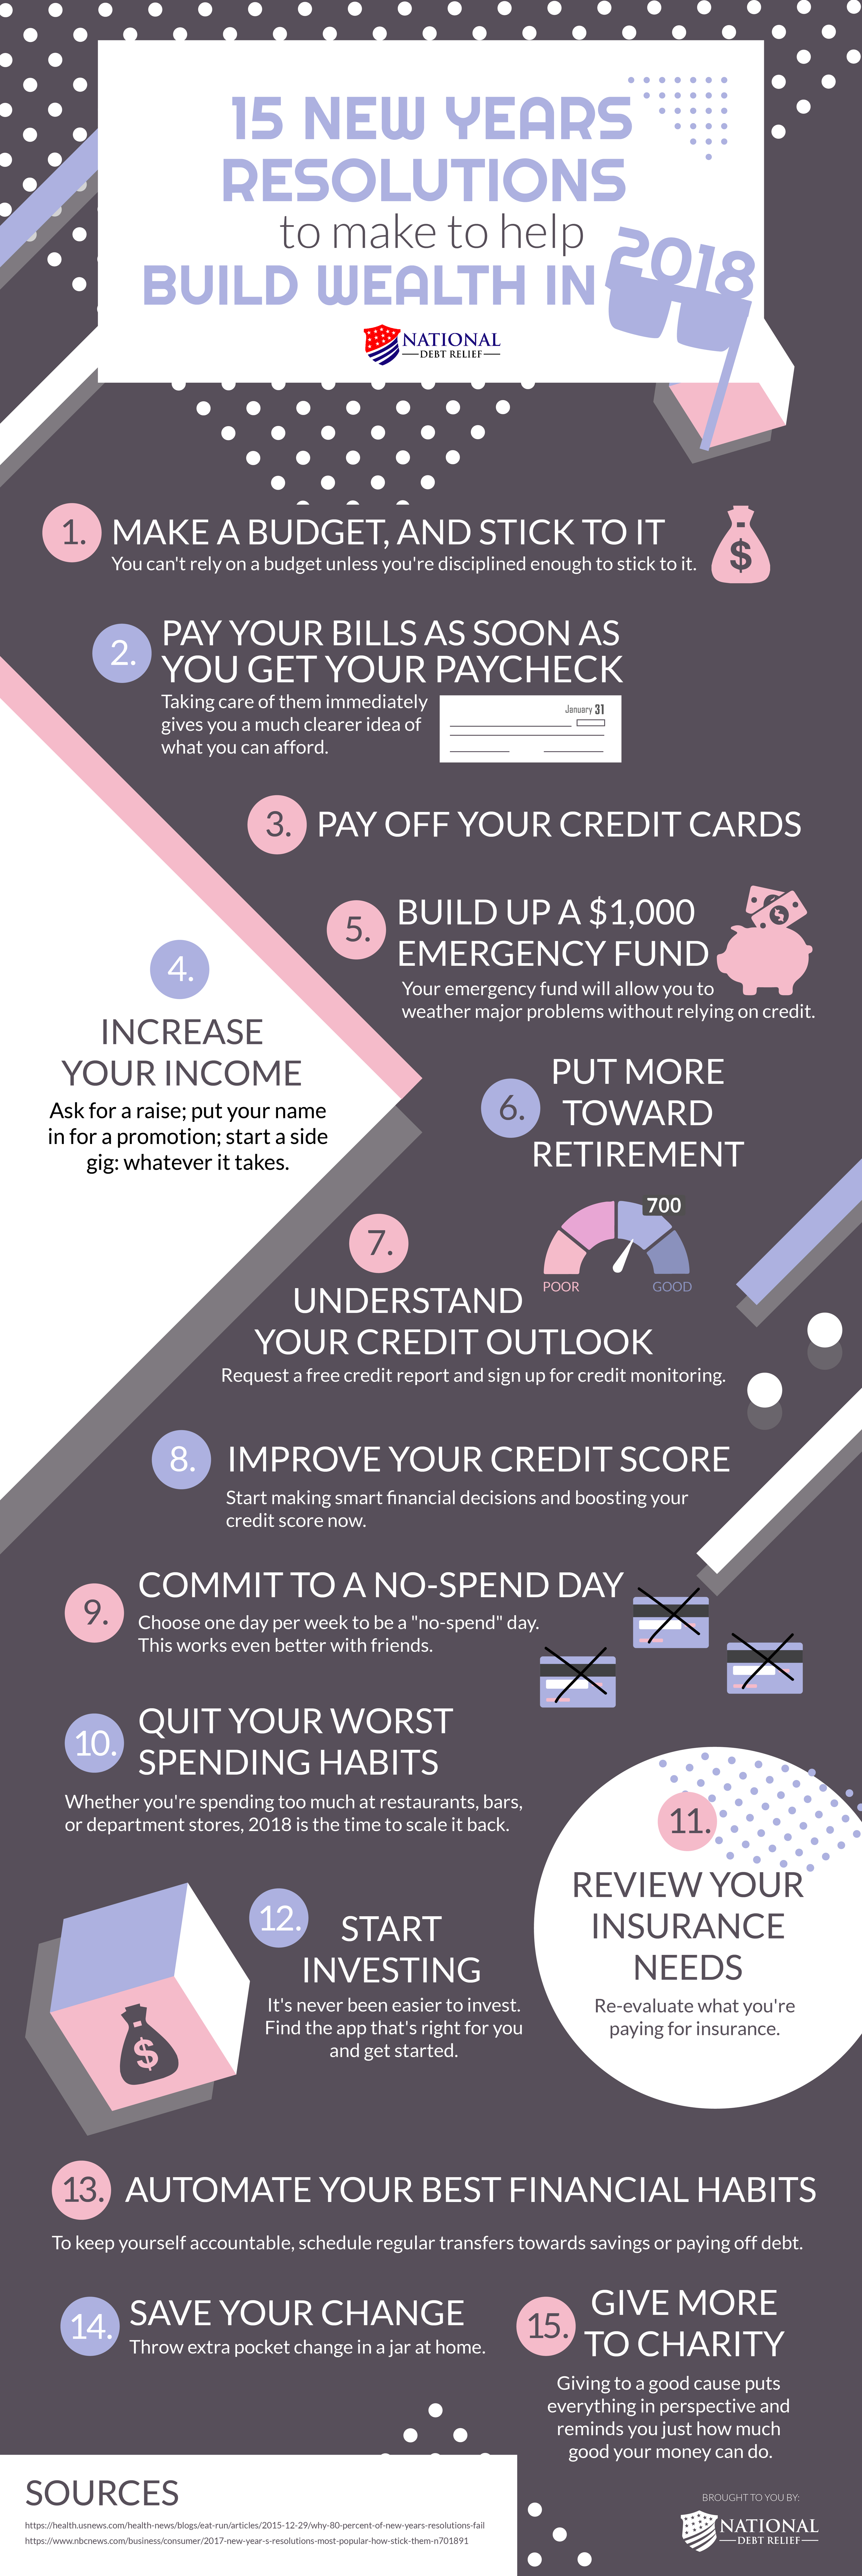 15 New Year s Resolutions to Make to Help Build Wealth in 2018 financial new years resolutions infographic